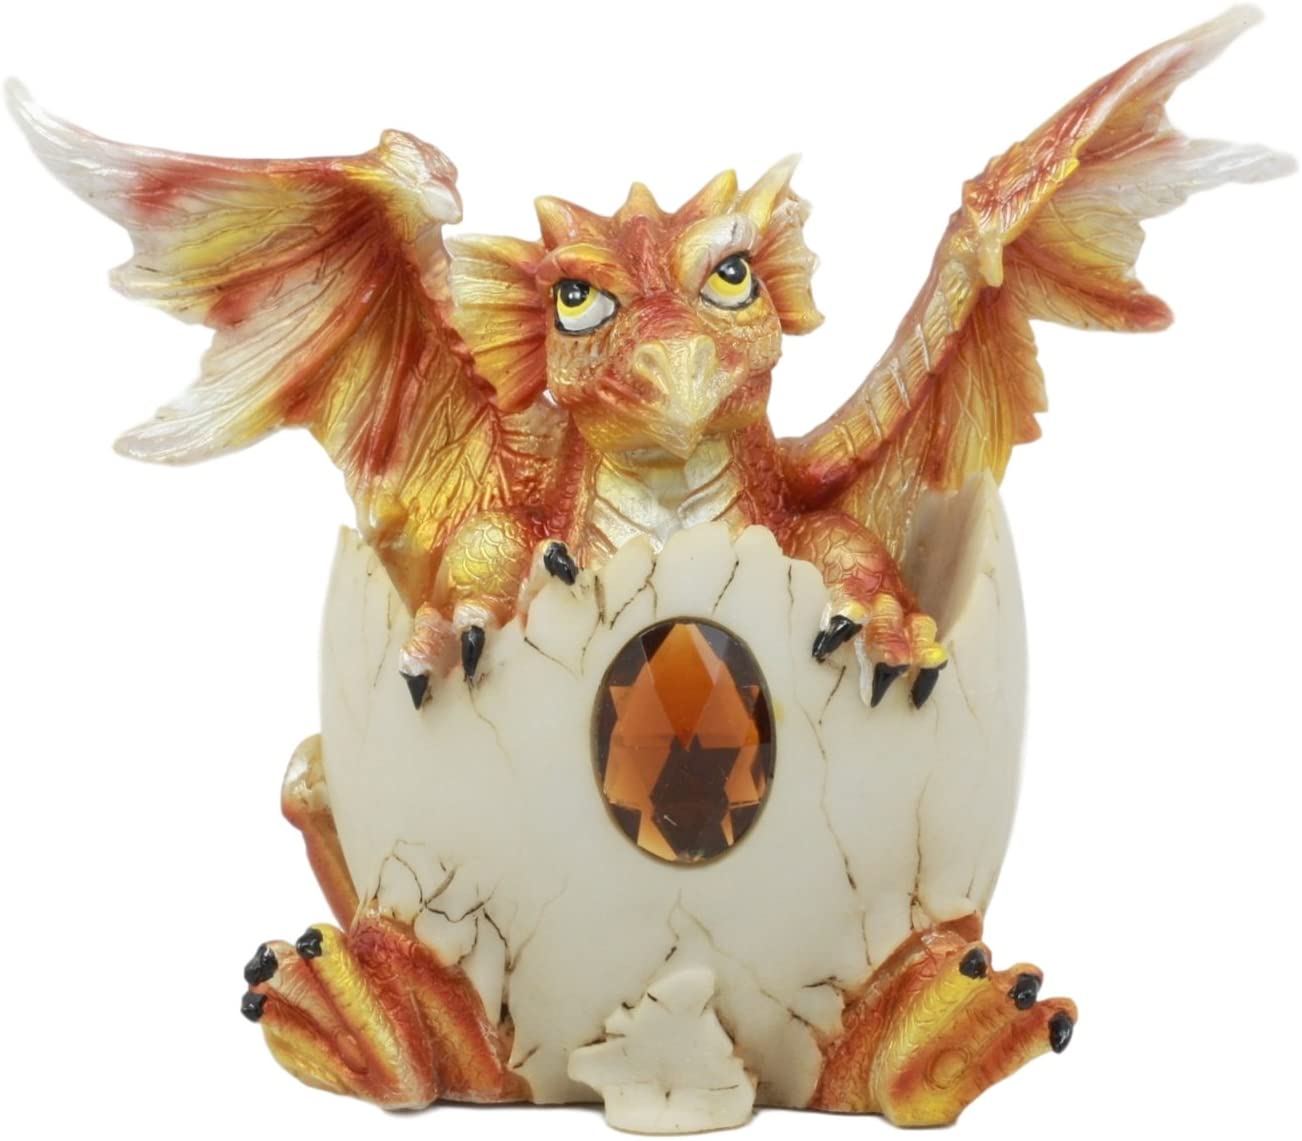 Ebros November Birthstone Dragon Egg Statue 4.25